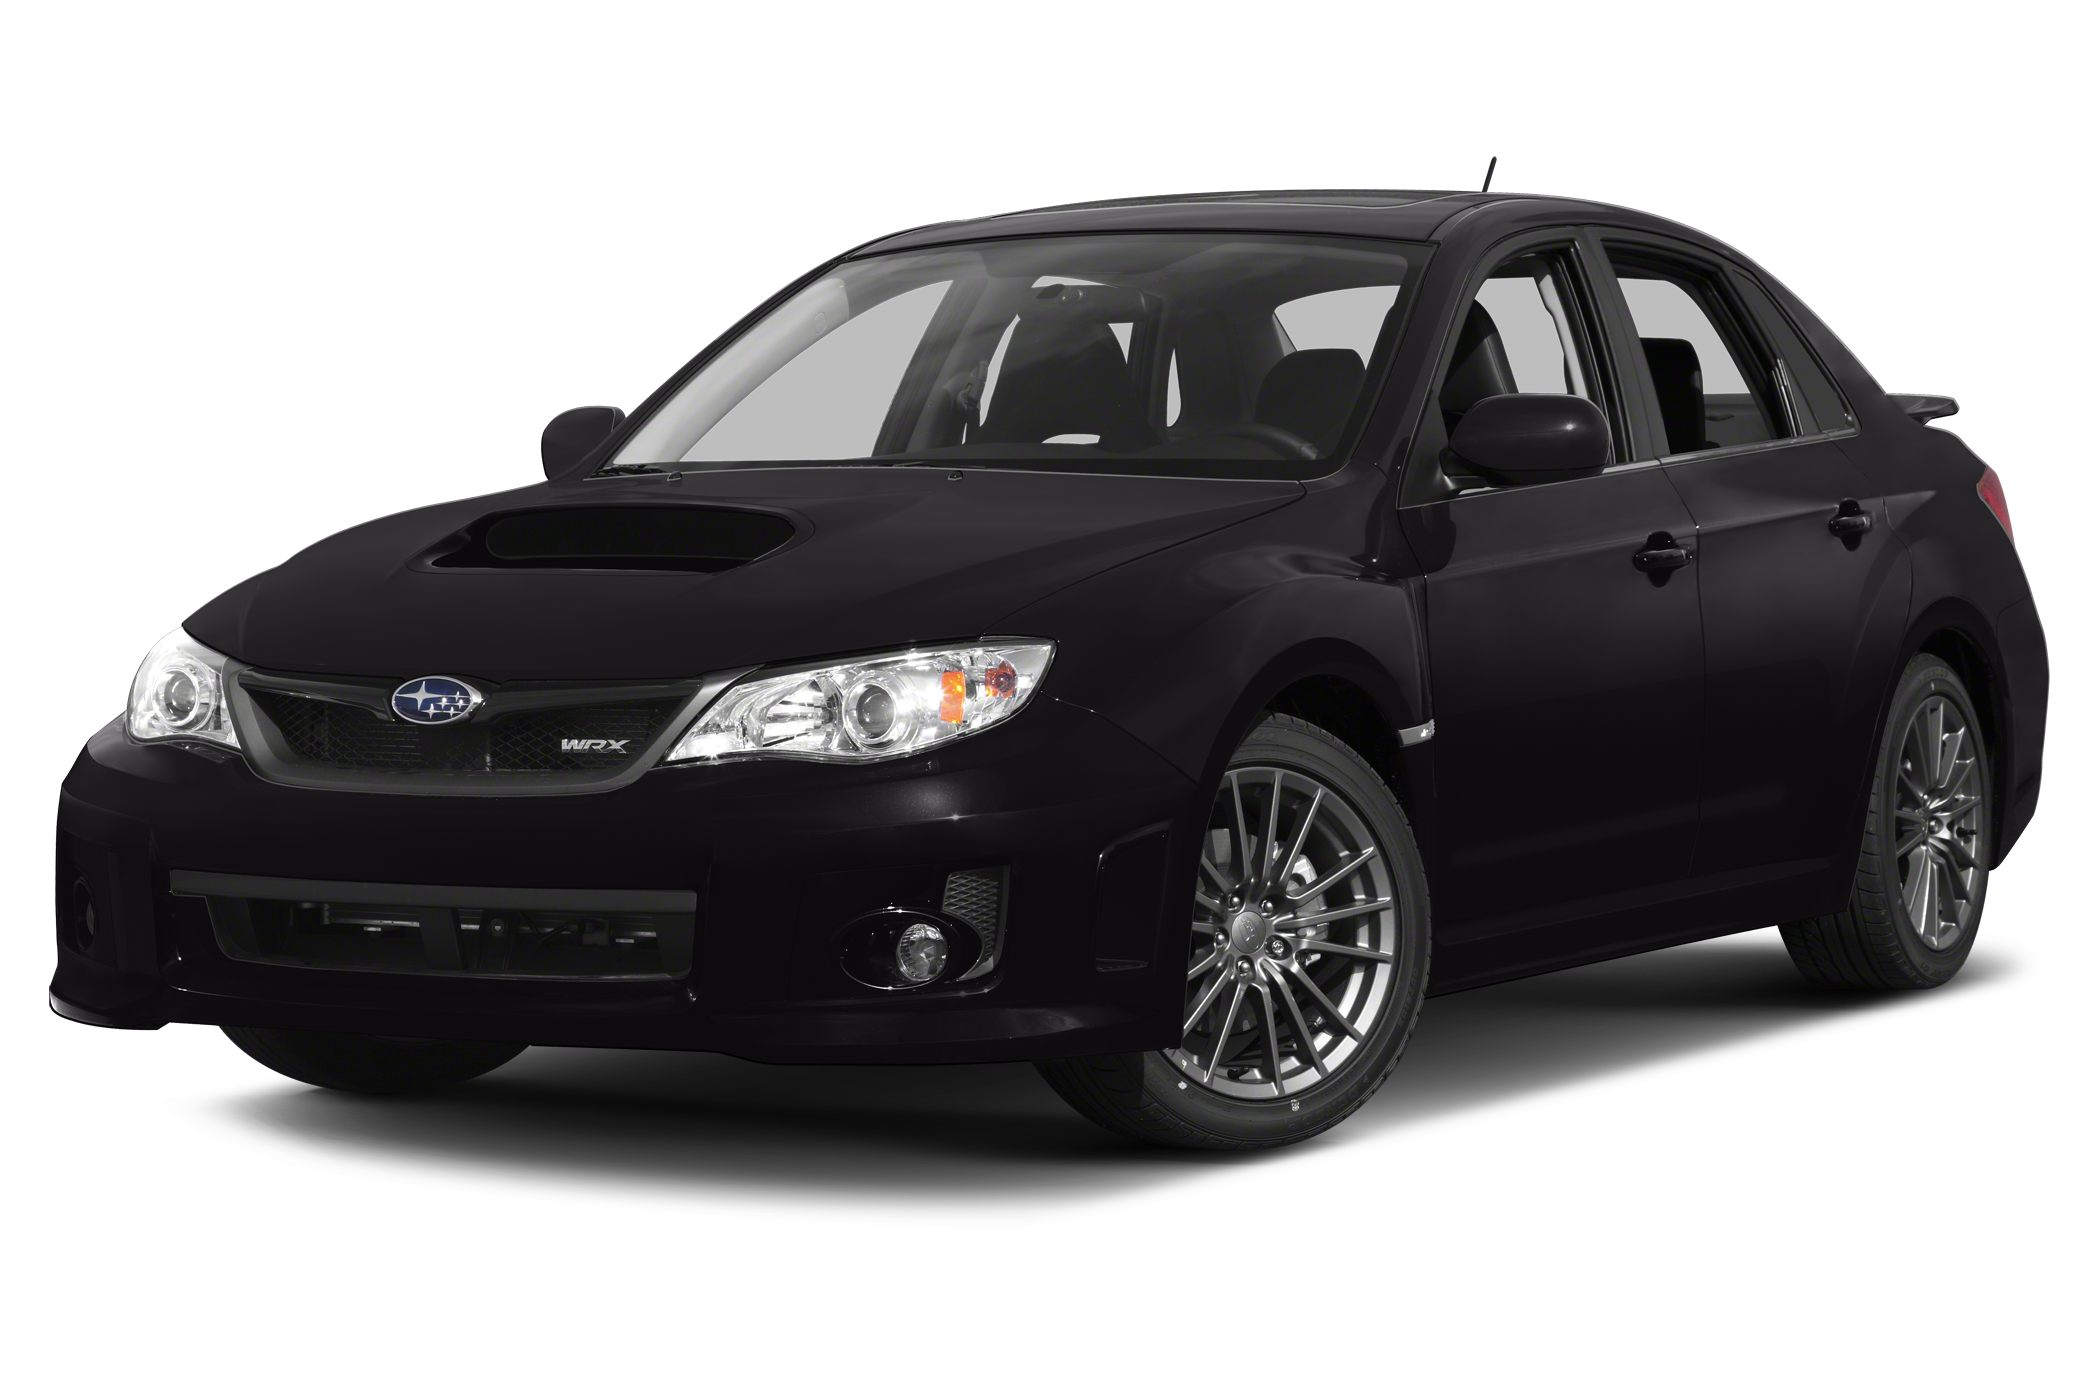 2013 Subaru Impreza WRX Premium Vehicle Options 4WDAWD Electronic Brake Assistance Steering Wheel